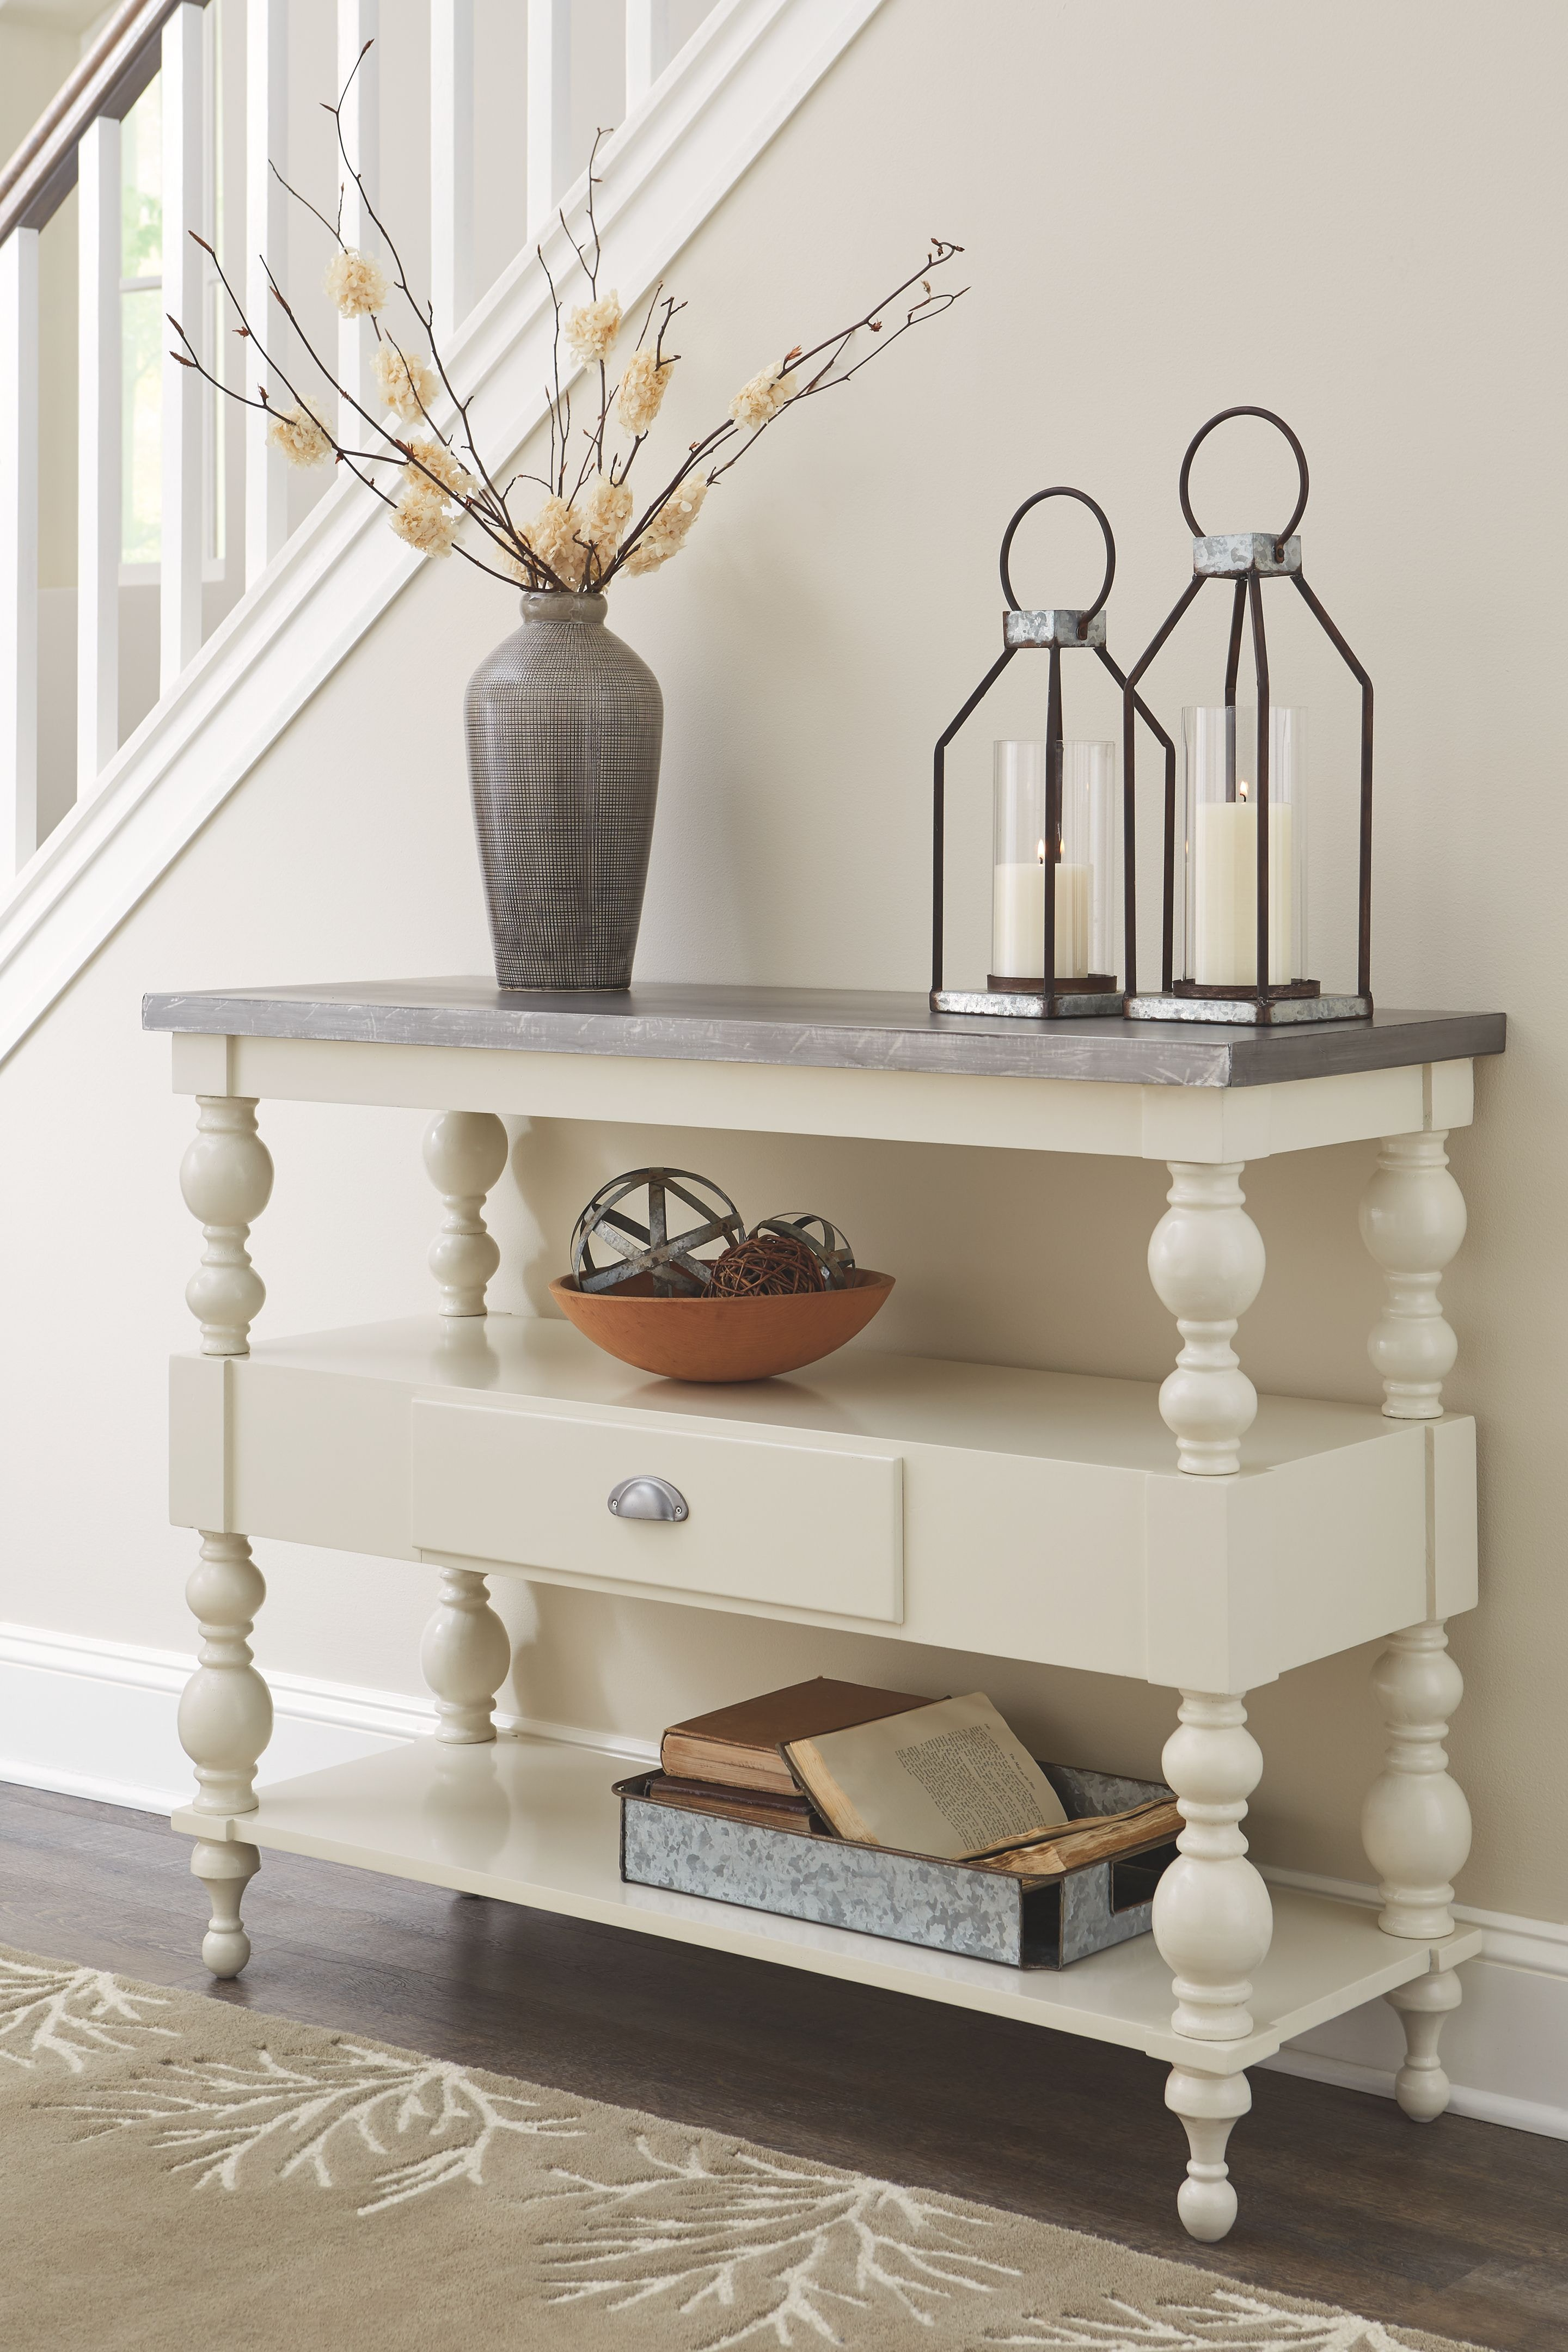 Charmant Signature Design By Ashley Console Sofa Table A4000013